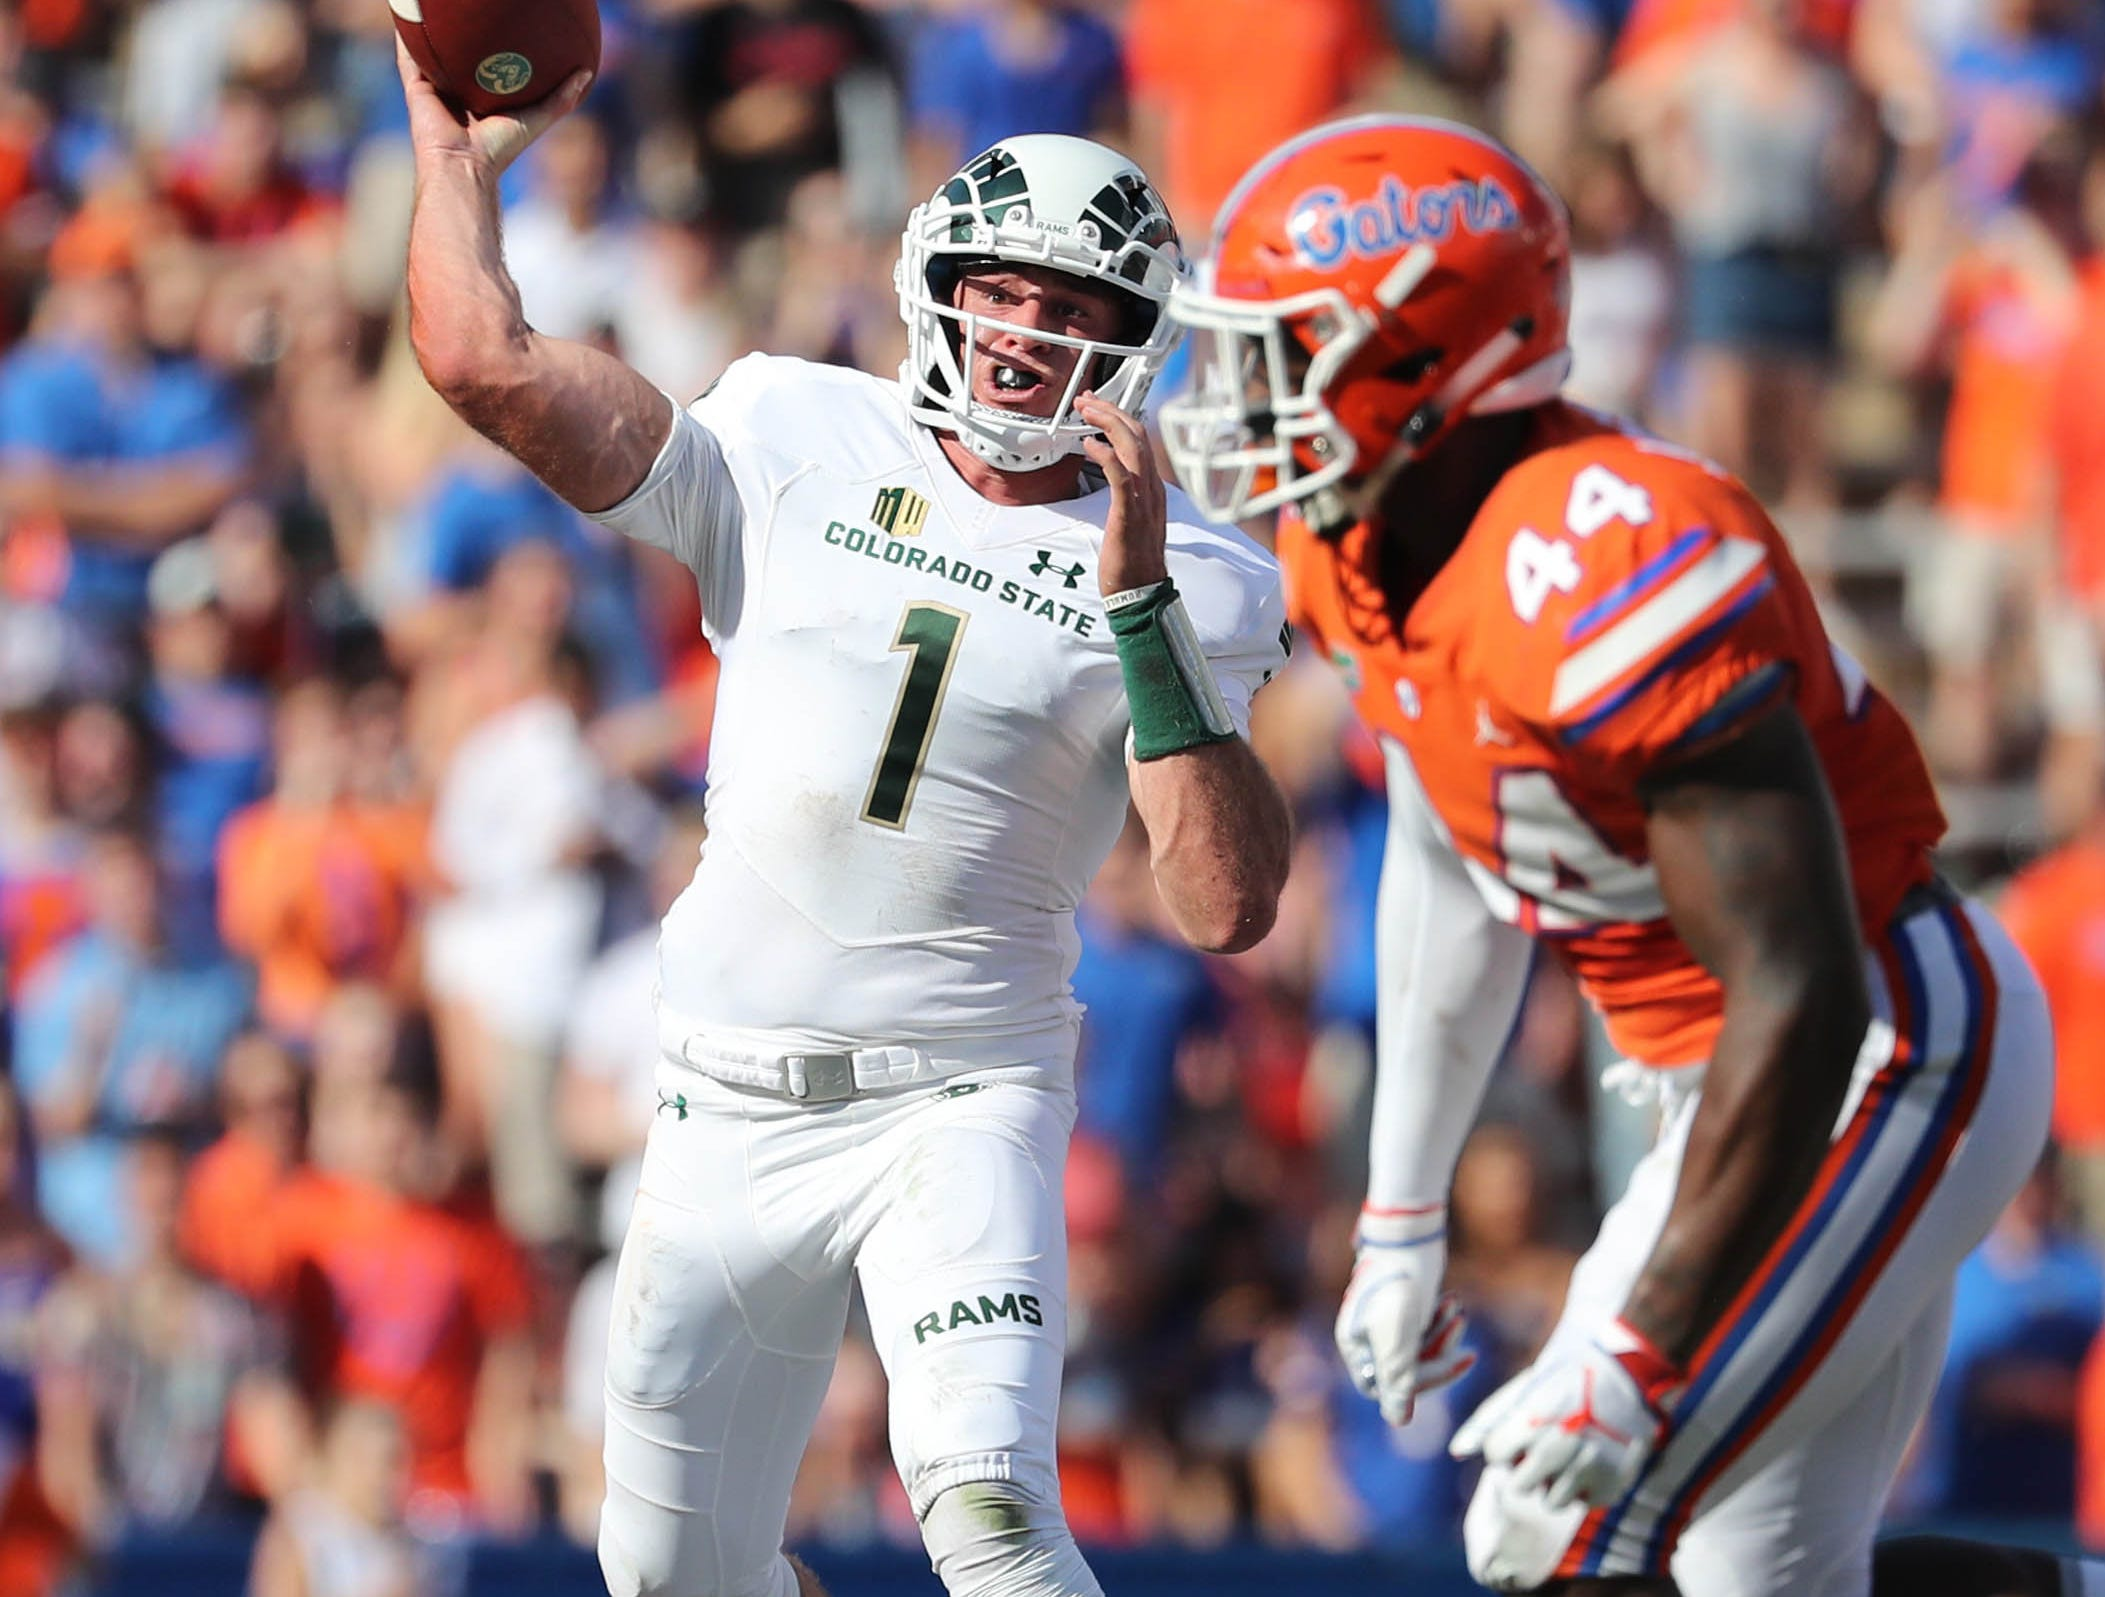 Sep 15, 2018; Gainesville, FL, USA; Colorado State Rams quarterback K.J. Carta-Samuels (1) throws the ball against the Florida Gators during the second quarter at Ben Hill Griffin Stadium. Mandatory Credit: Kim Klement-USA TODAY Sports